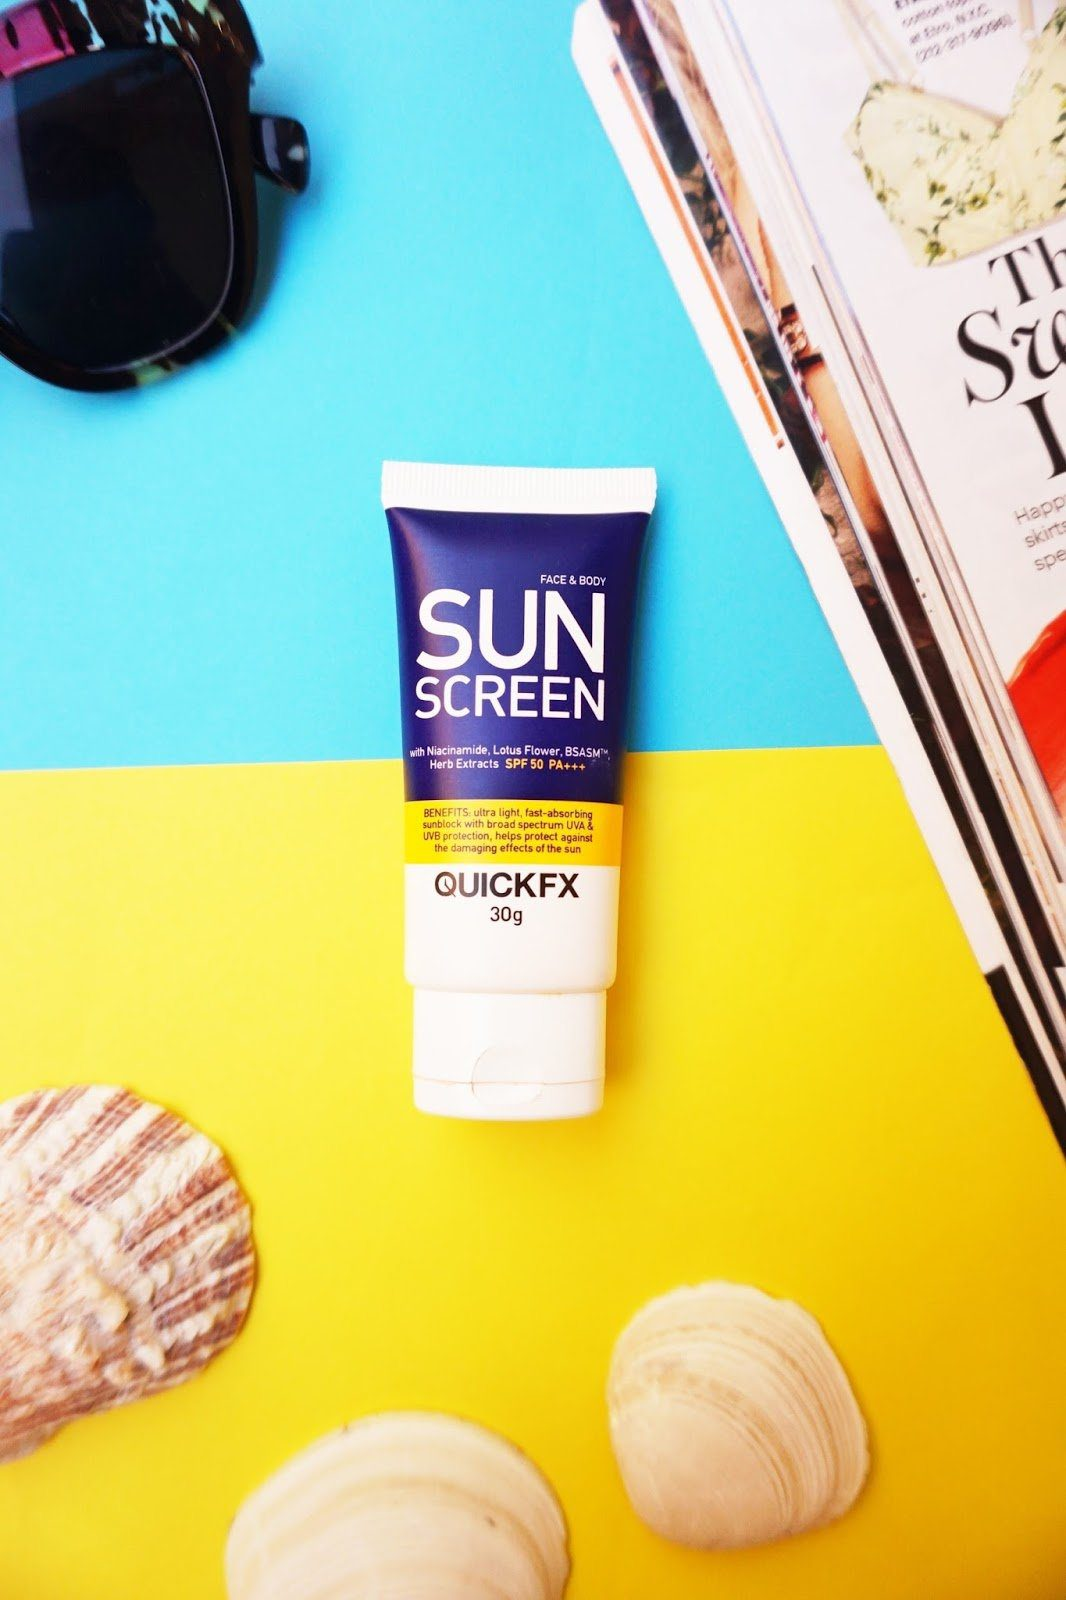 I used to love the QuickFX Sunscreen. It's different now, though. Here's my review.